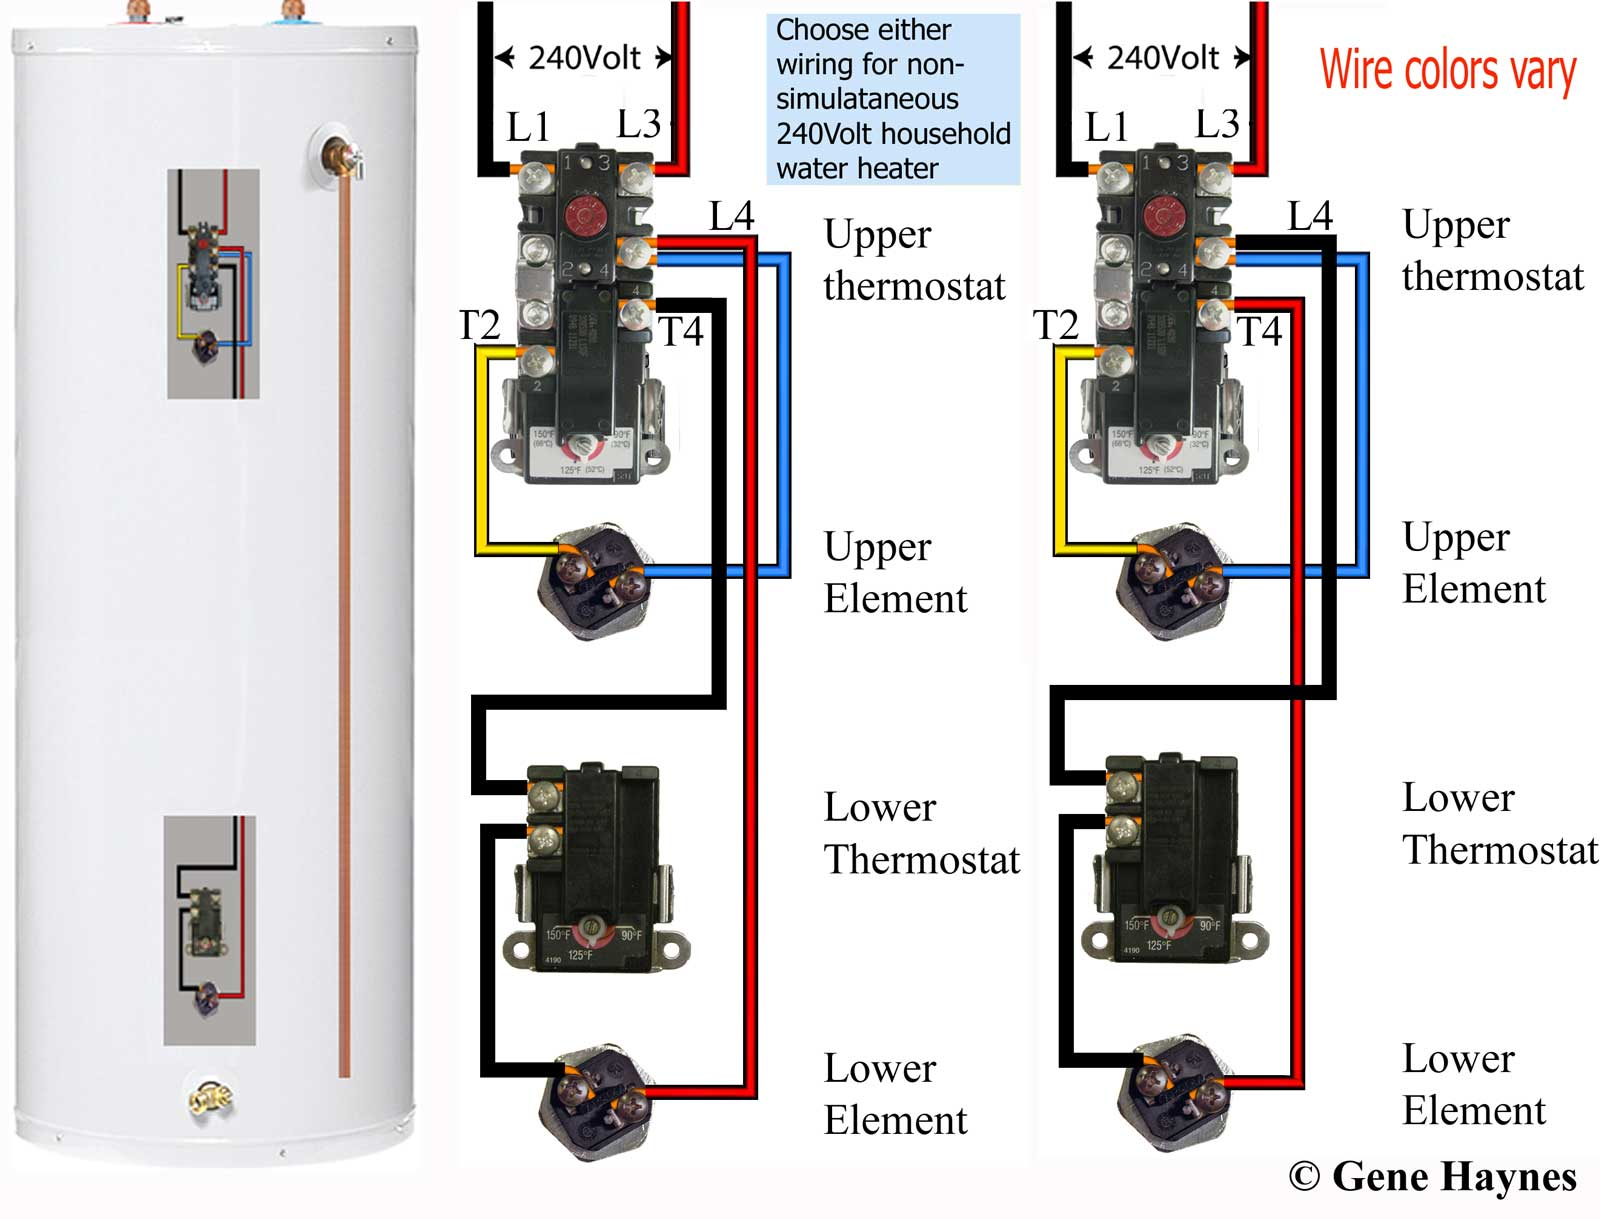 How to wire water heater thermostats see larger residential dual element water heater both elements are never on at same time unless tank is wired for other purpose see owners manual ccuart Image collections